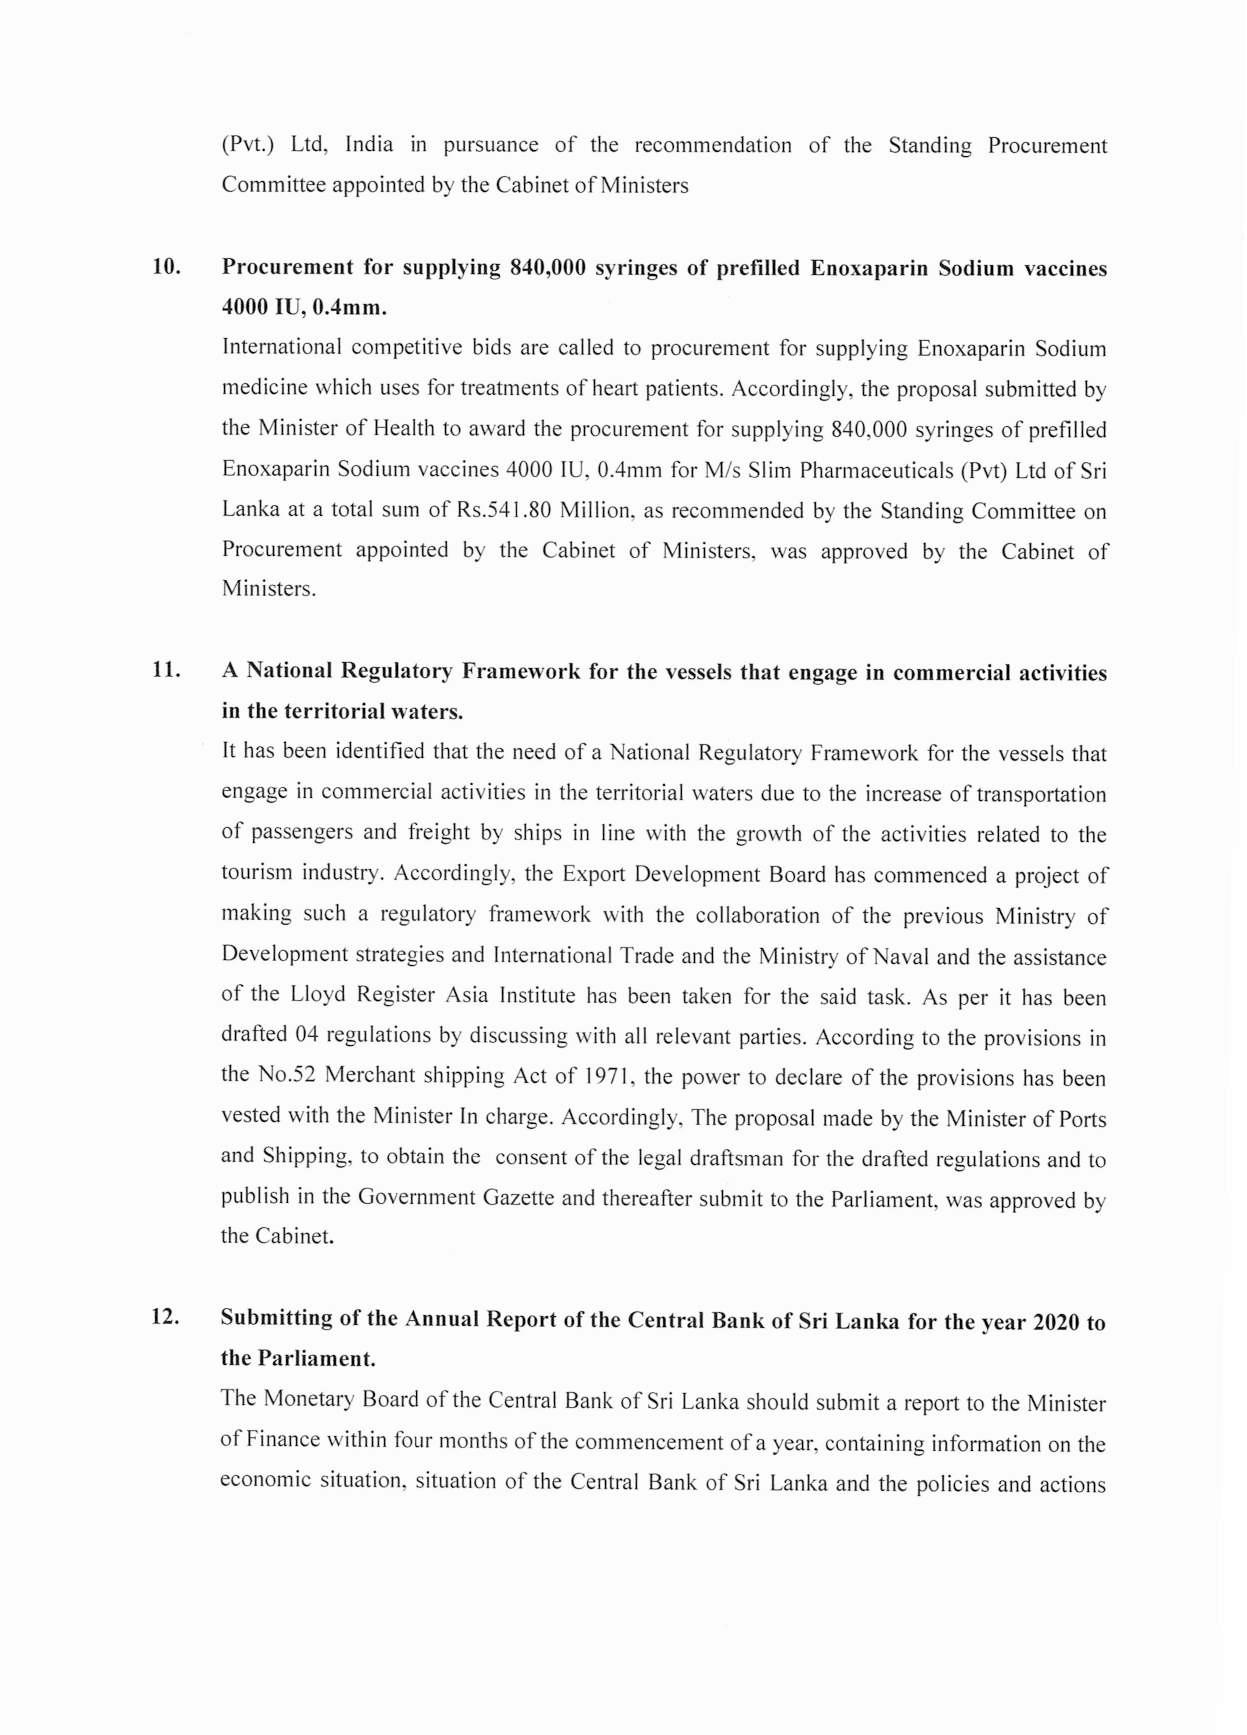 Cabinet Decision on 03.05.2021 English page 005